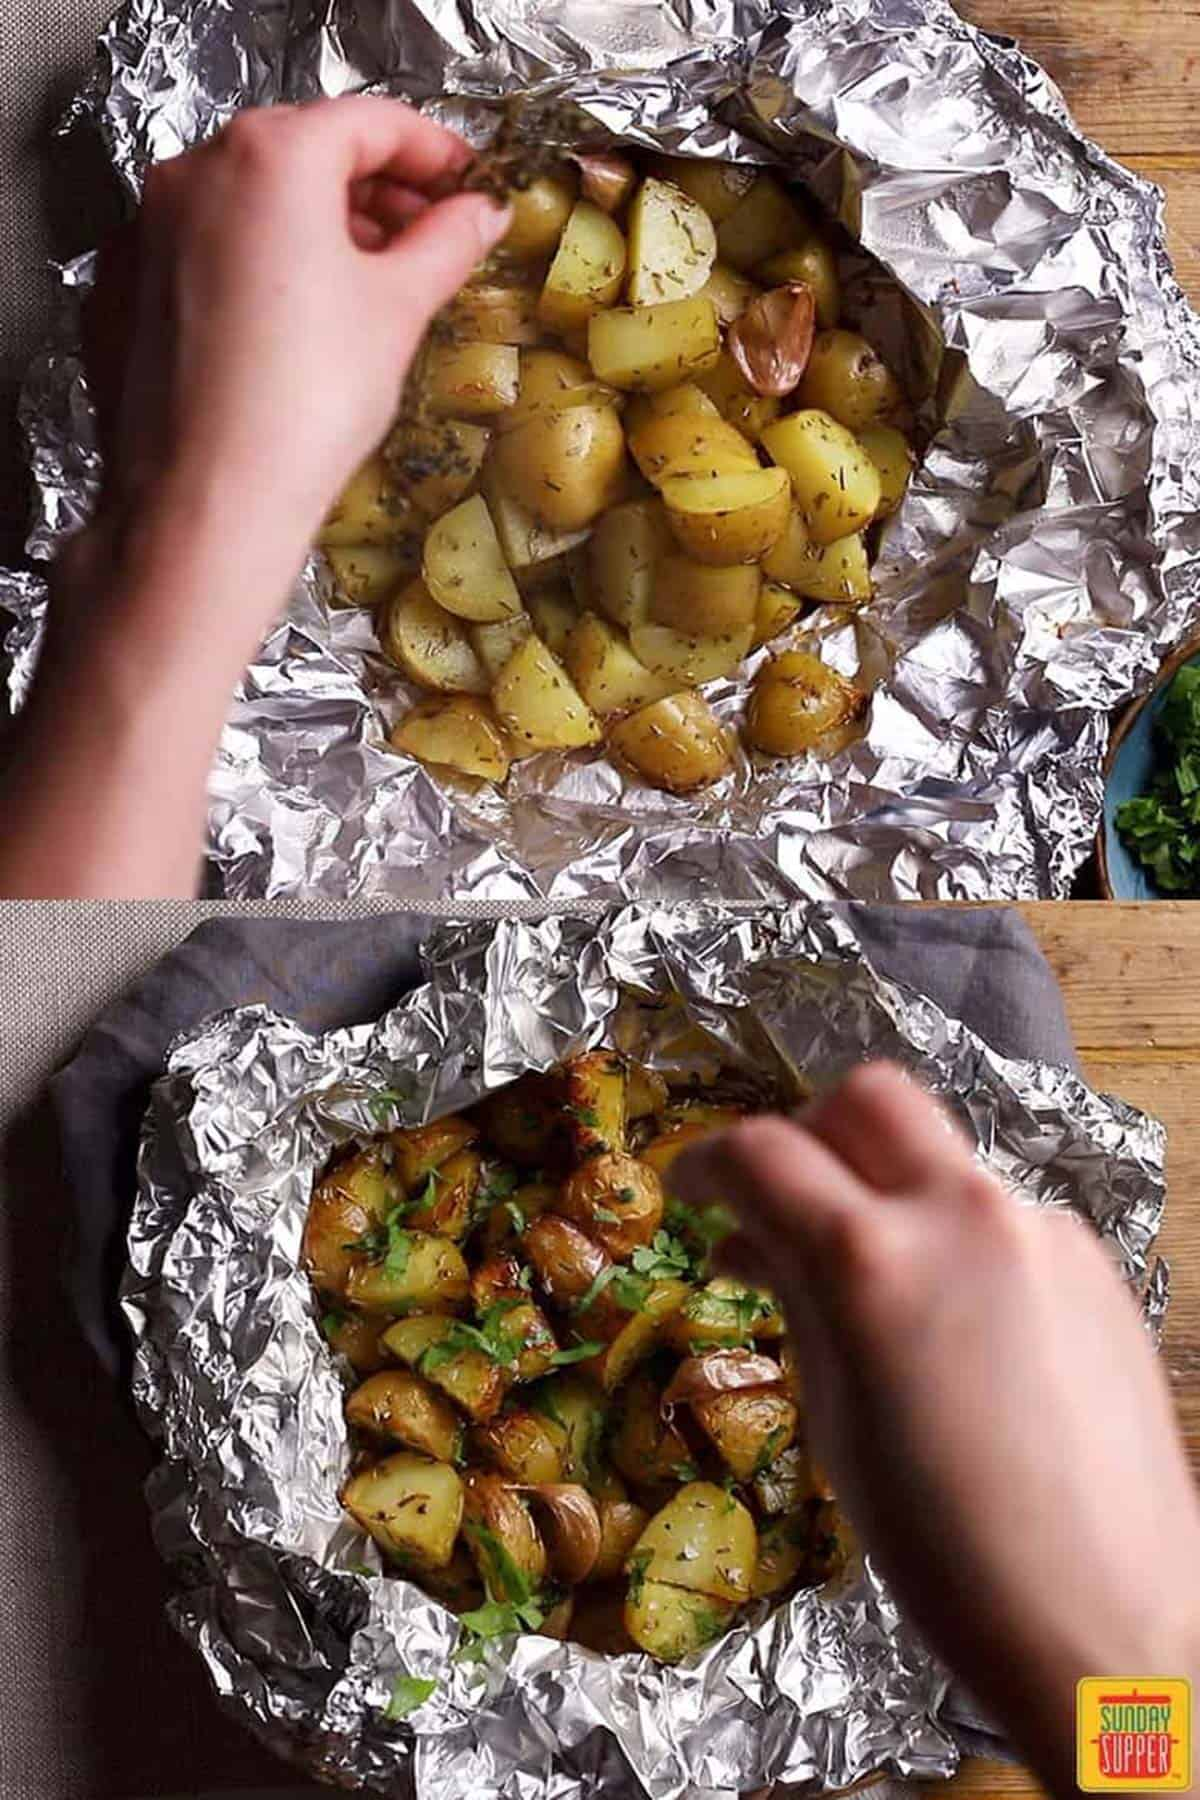 Cooking the foil pack potatoes and then topping with parsley